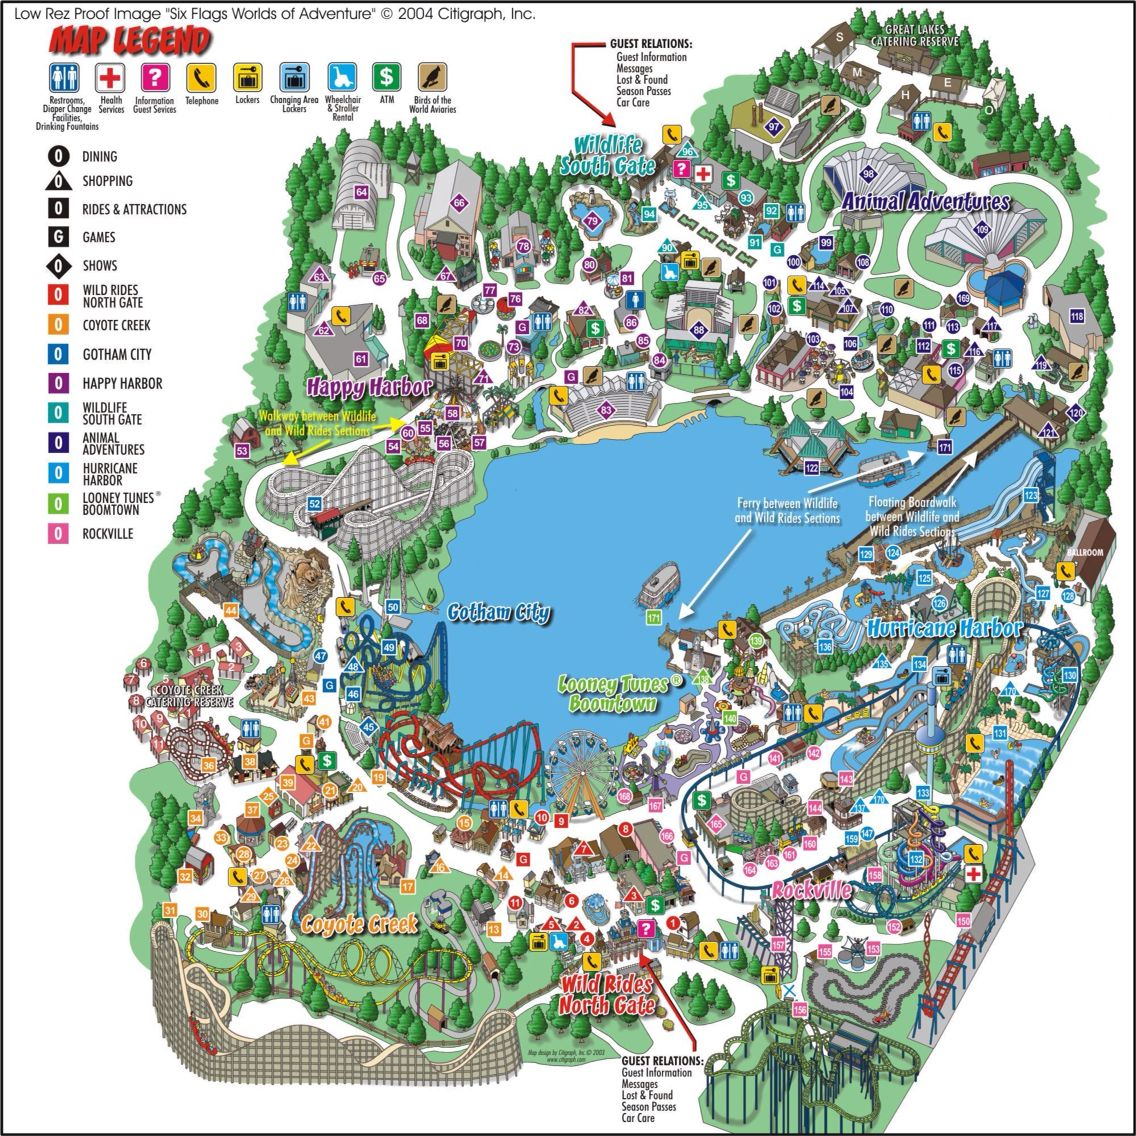 six flags new orleans map Map Of The Old Geauga Lake Geauga Lake Amusement Park Theme six flags new orleans map